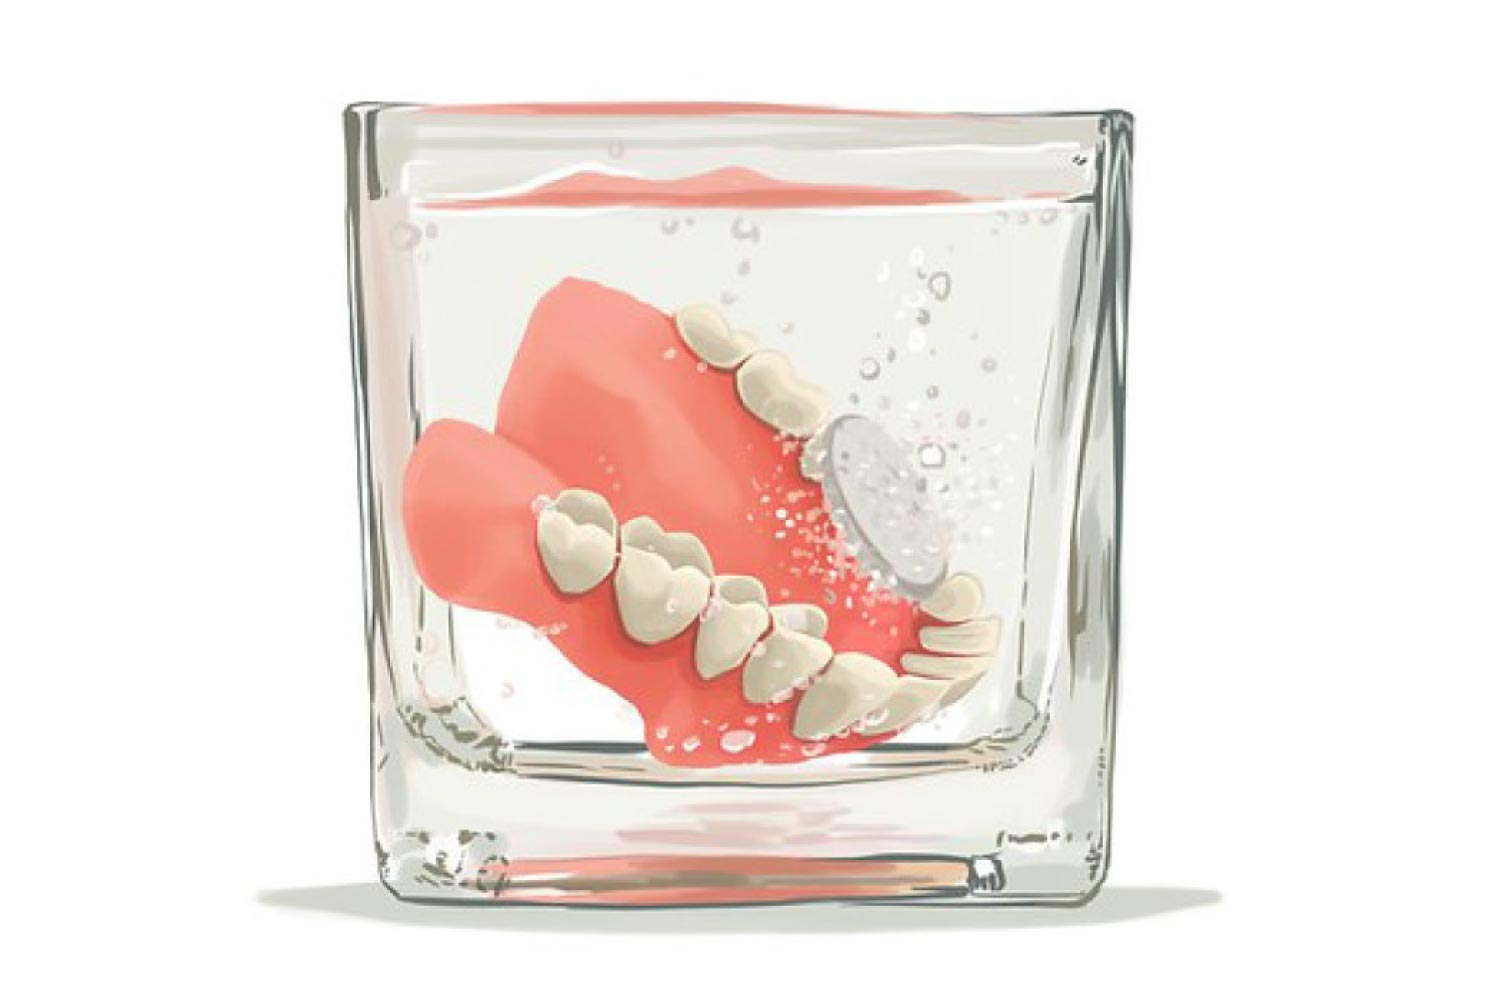 Dentures sitting in a cup getting cleaned.